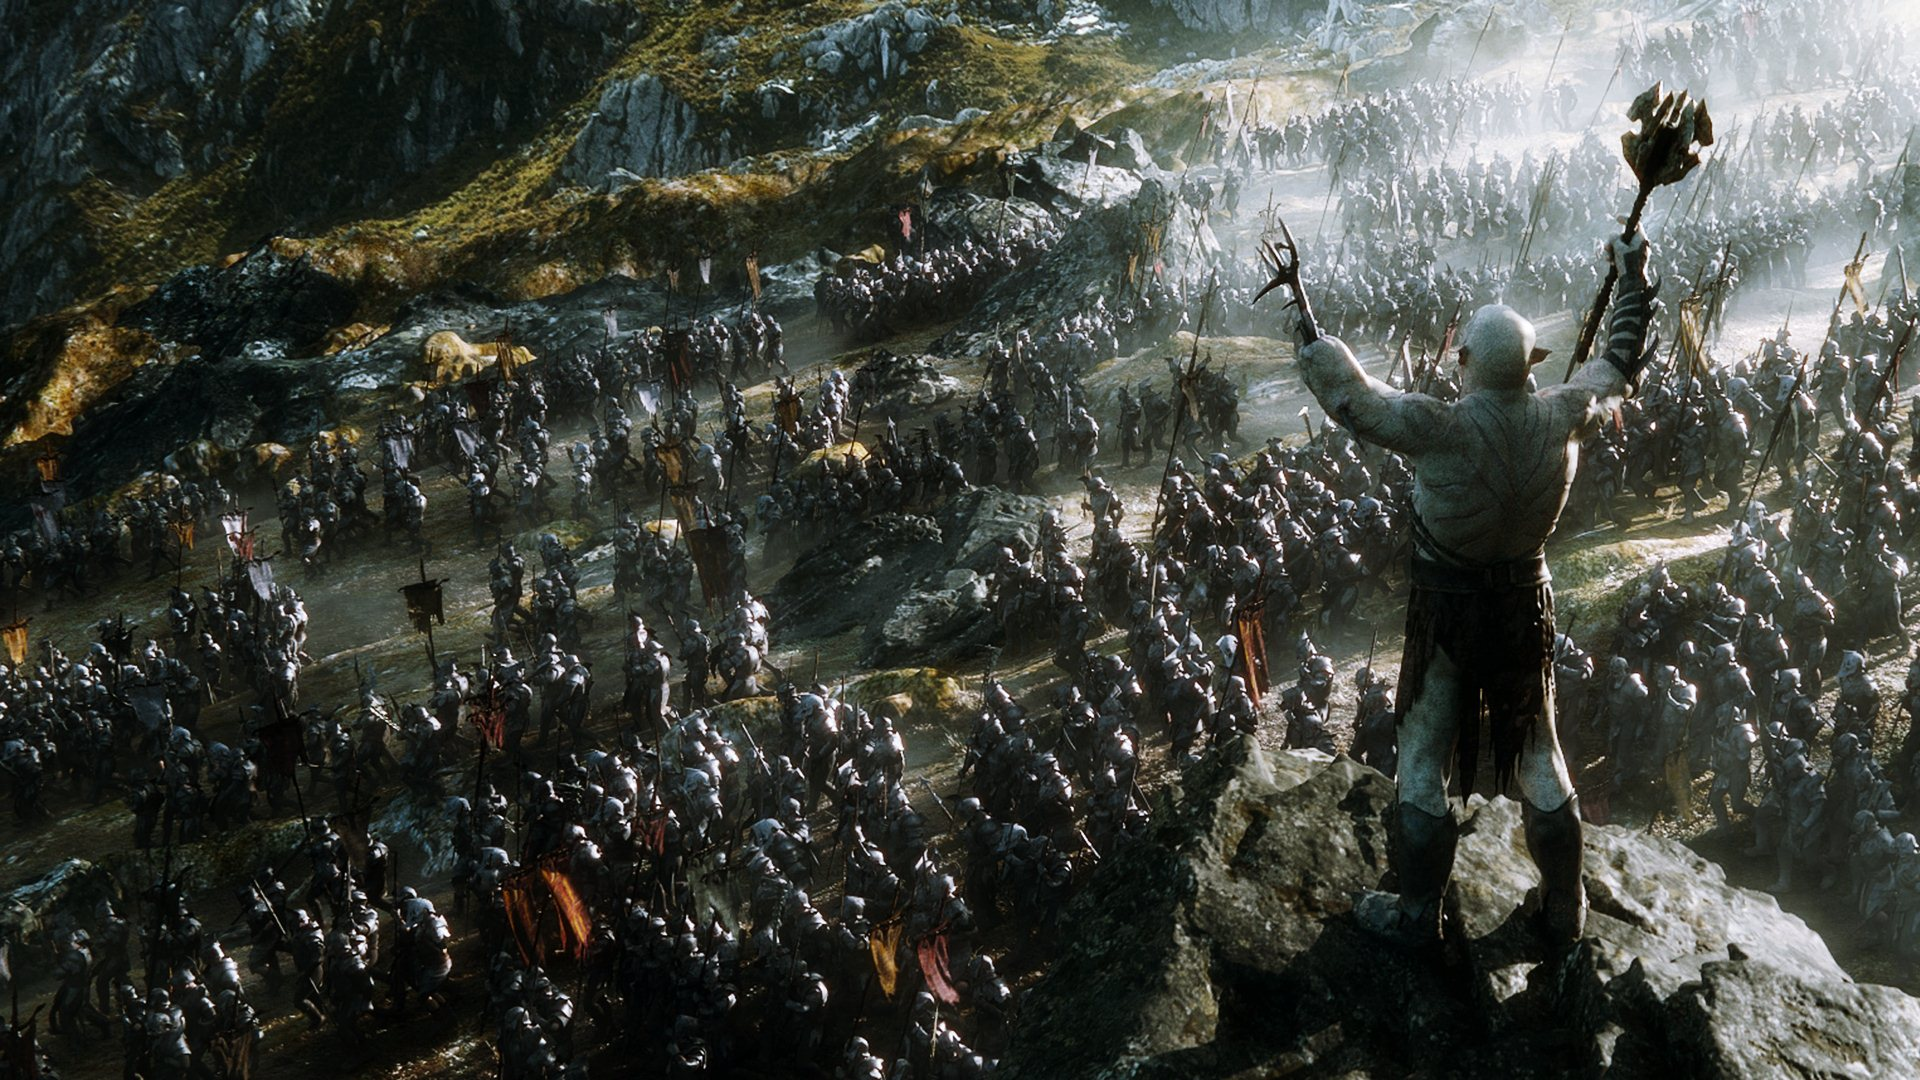 Review The Hobbit The Battle Of The Five Armies 2014 Sgs On Film